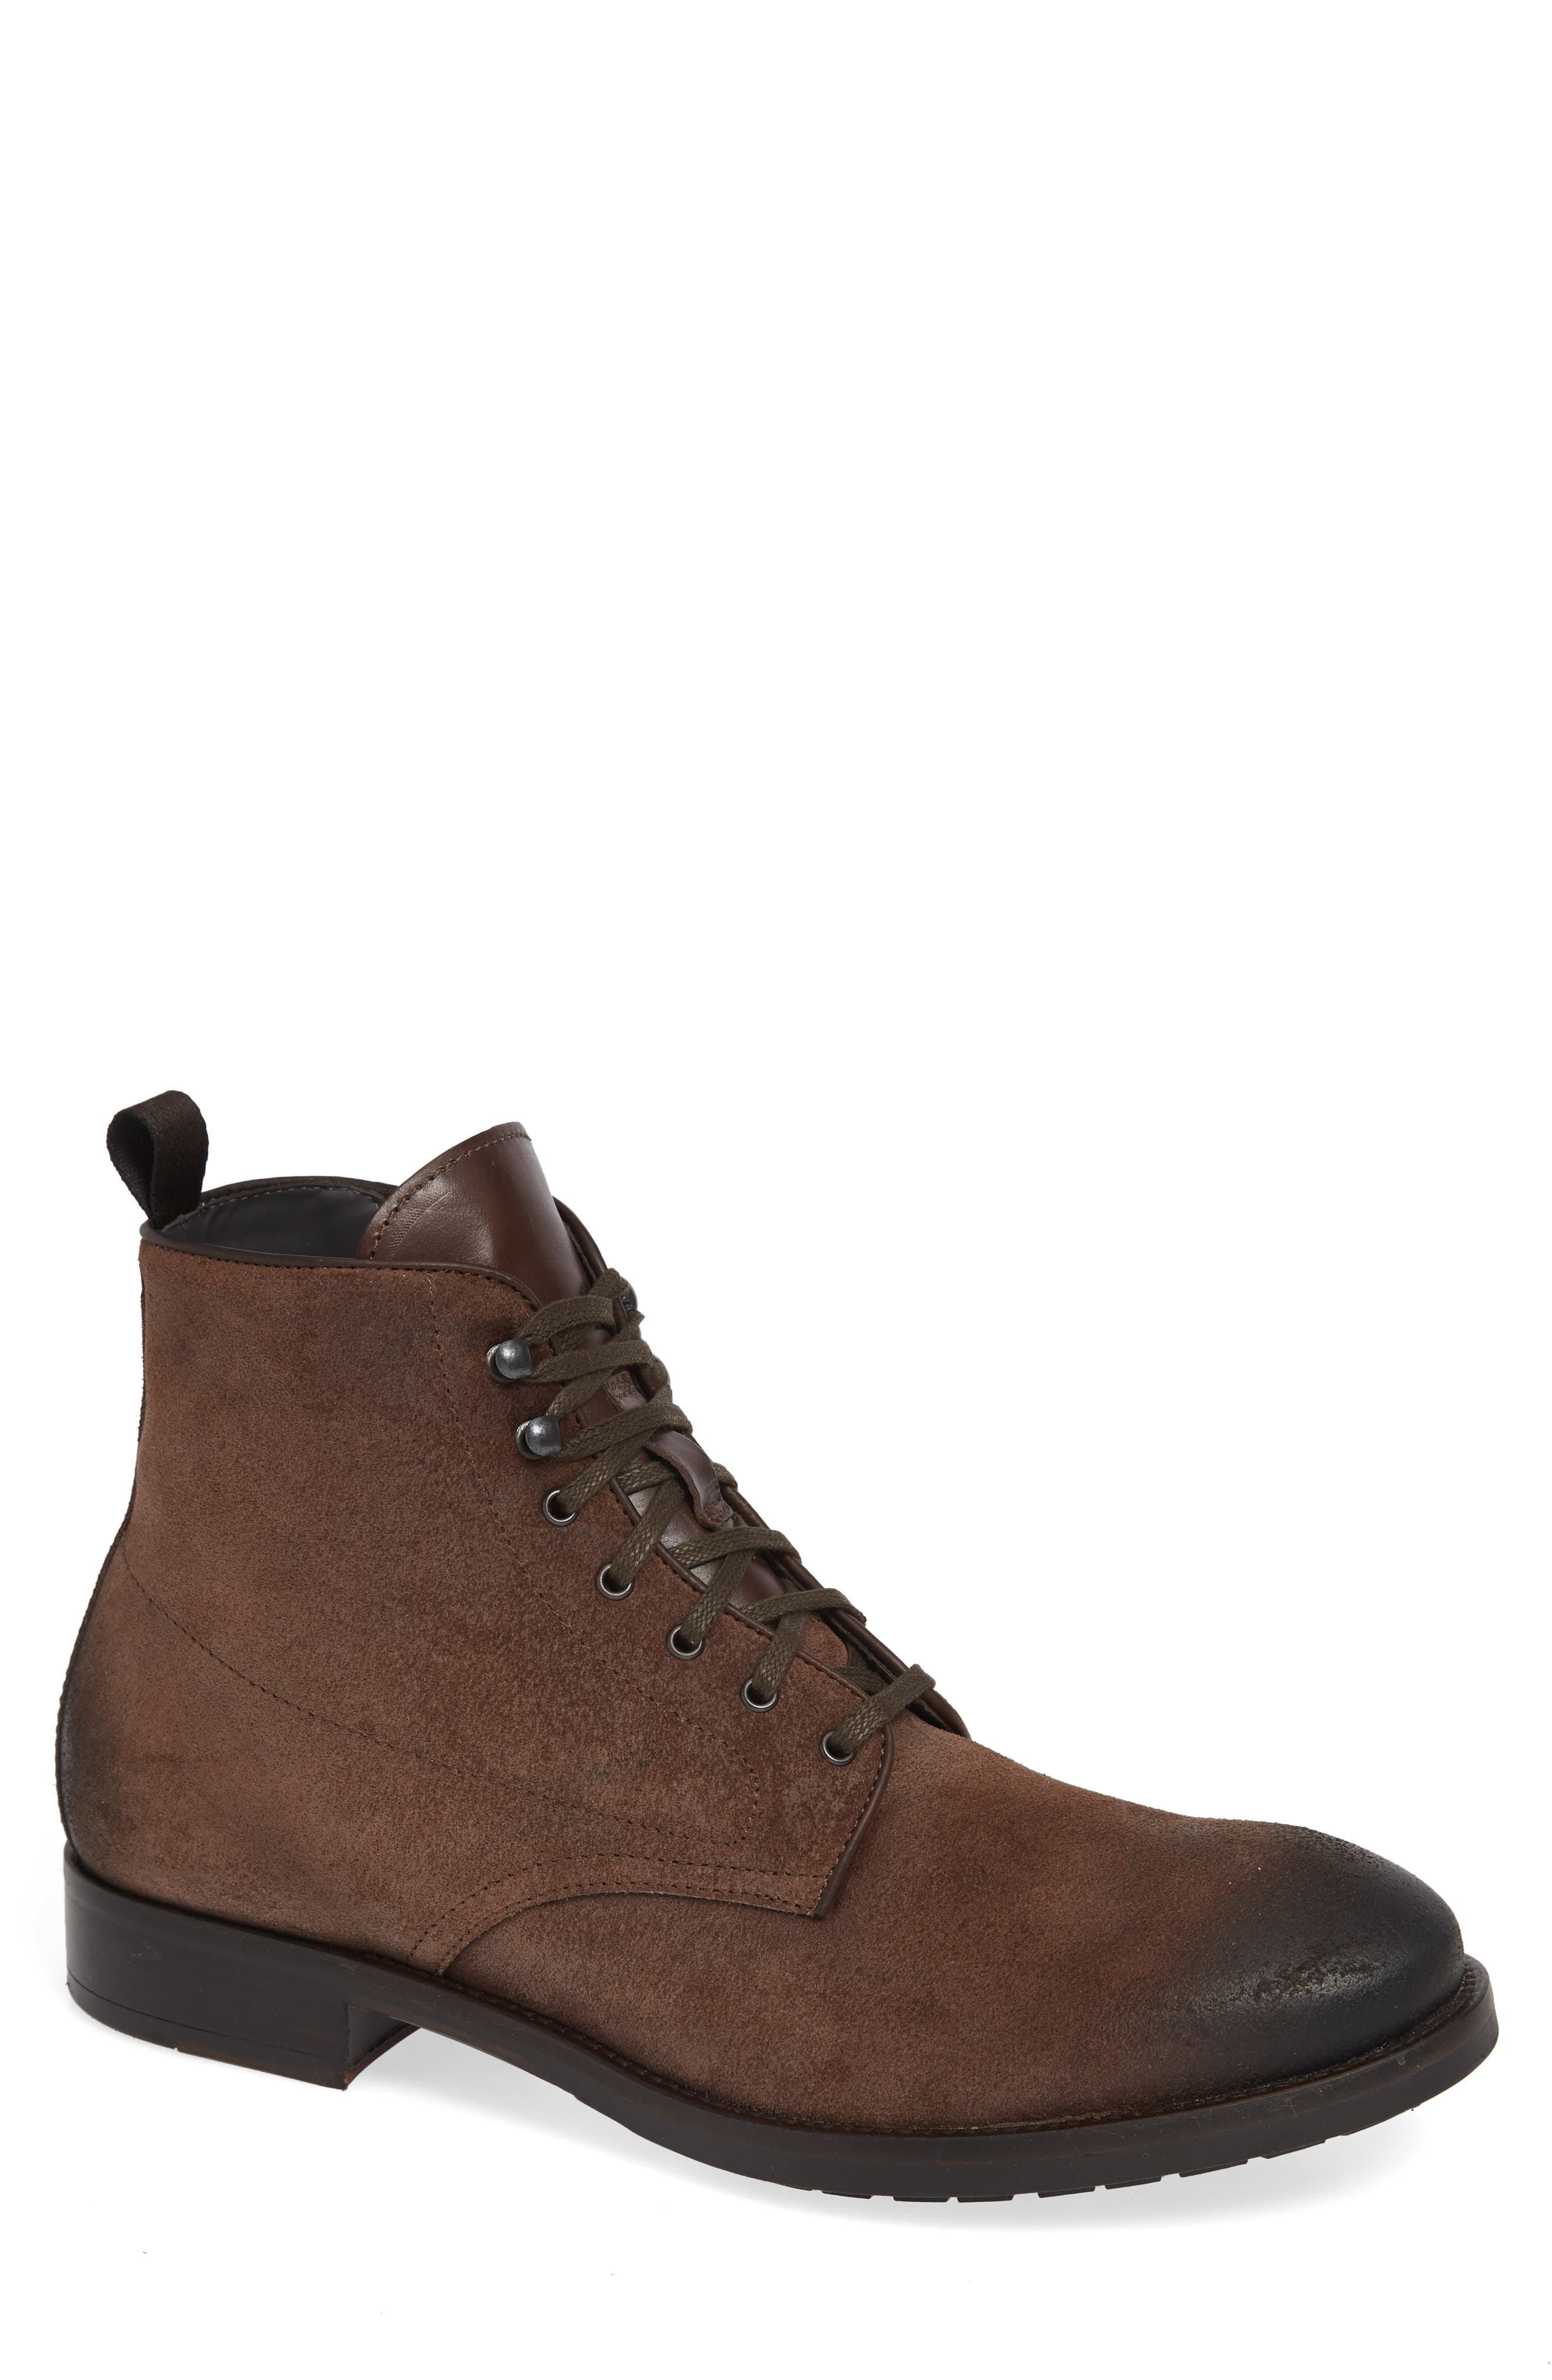 Athens Plain Toe Boot,                             Main thumbnail 1, color,                             TMORO SUEDE/ LEATHER